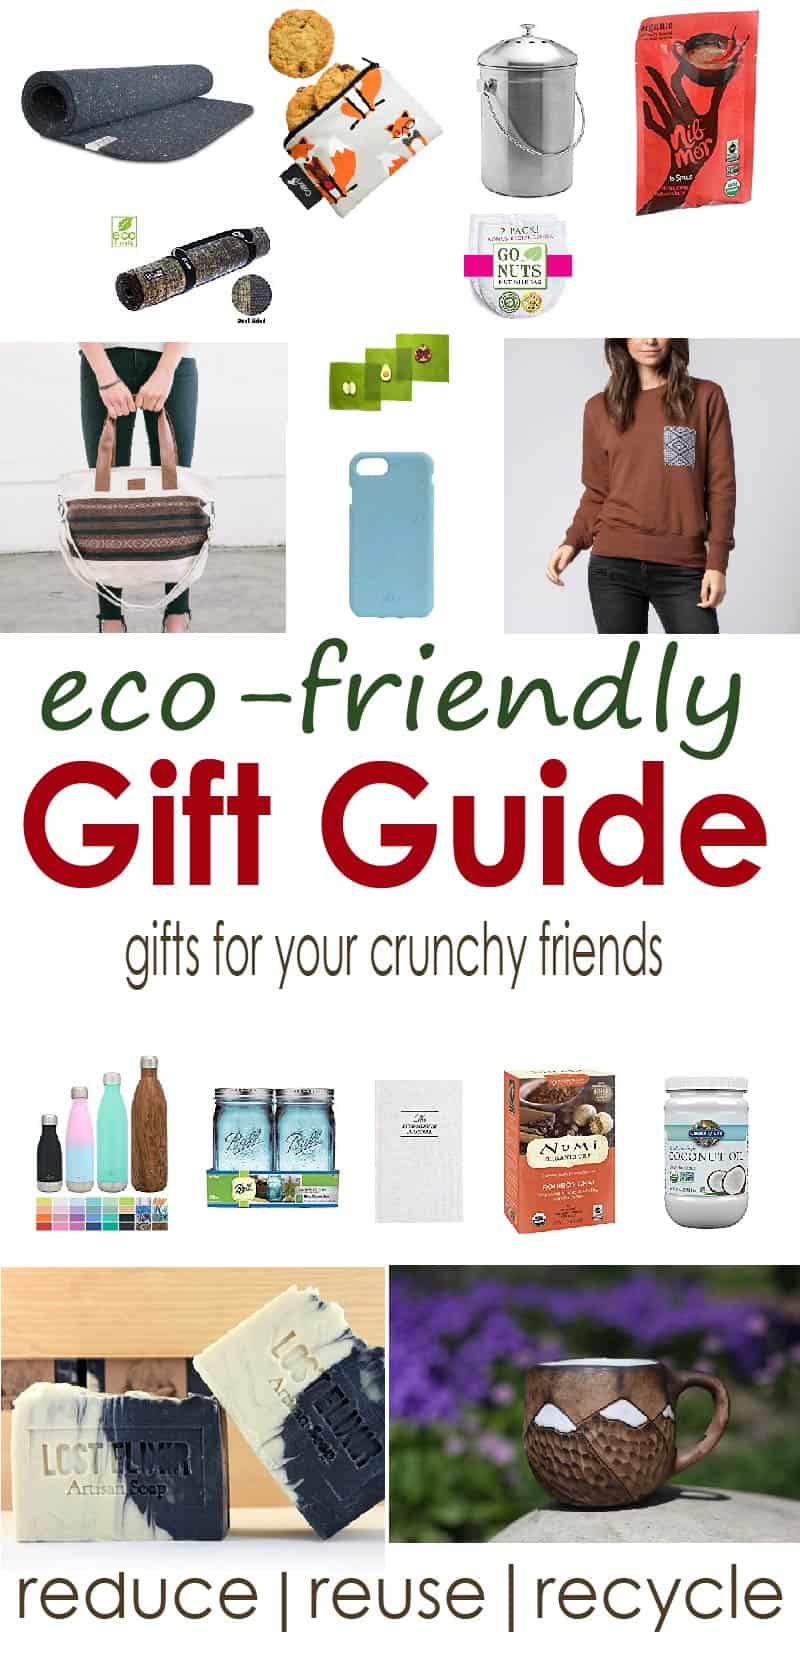 Made for your crunchy friend that's into meditation and saving the earth, these eco friendly gifts are recycled, hand made, and sustainable.